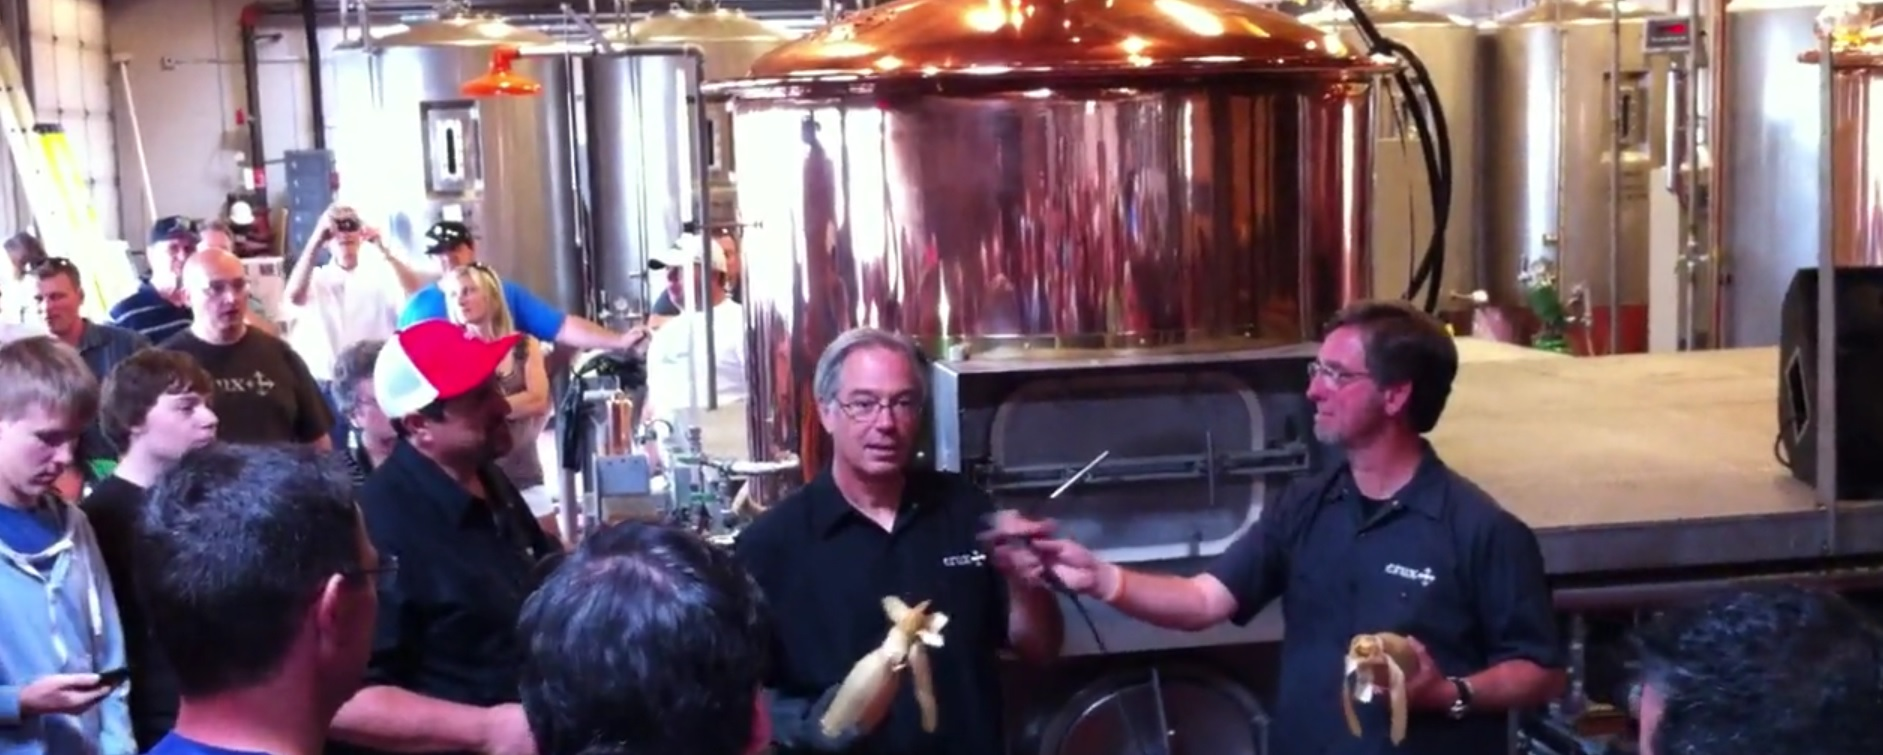 Larry Sidor (left) christening the new brewhouse at Crux Fermentation Project